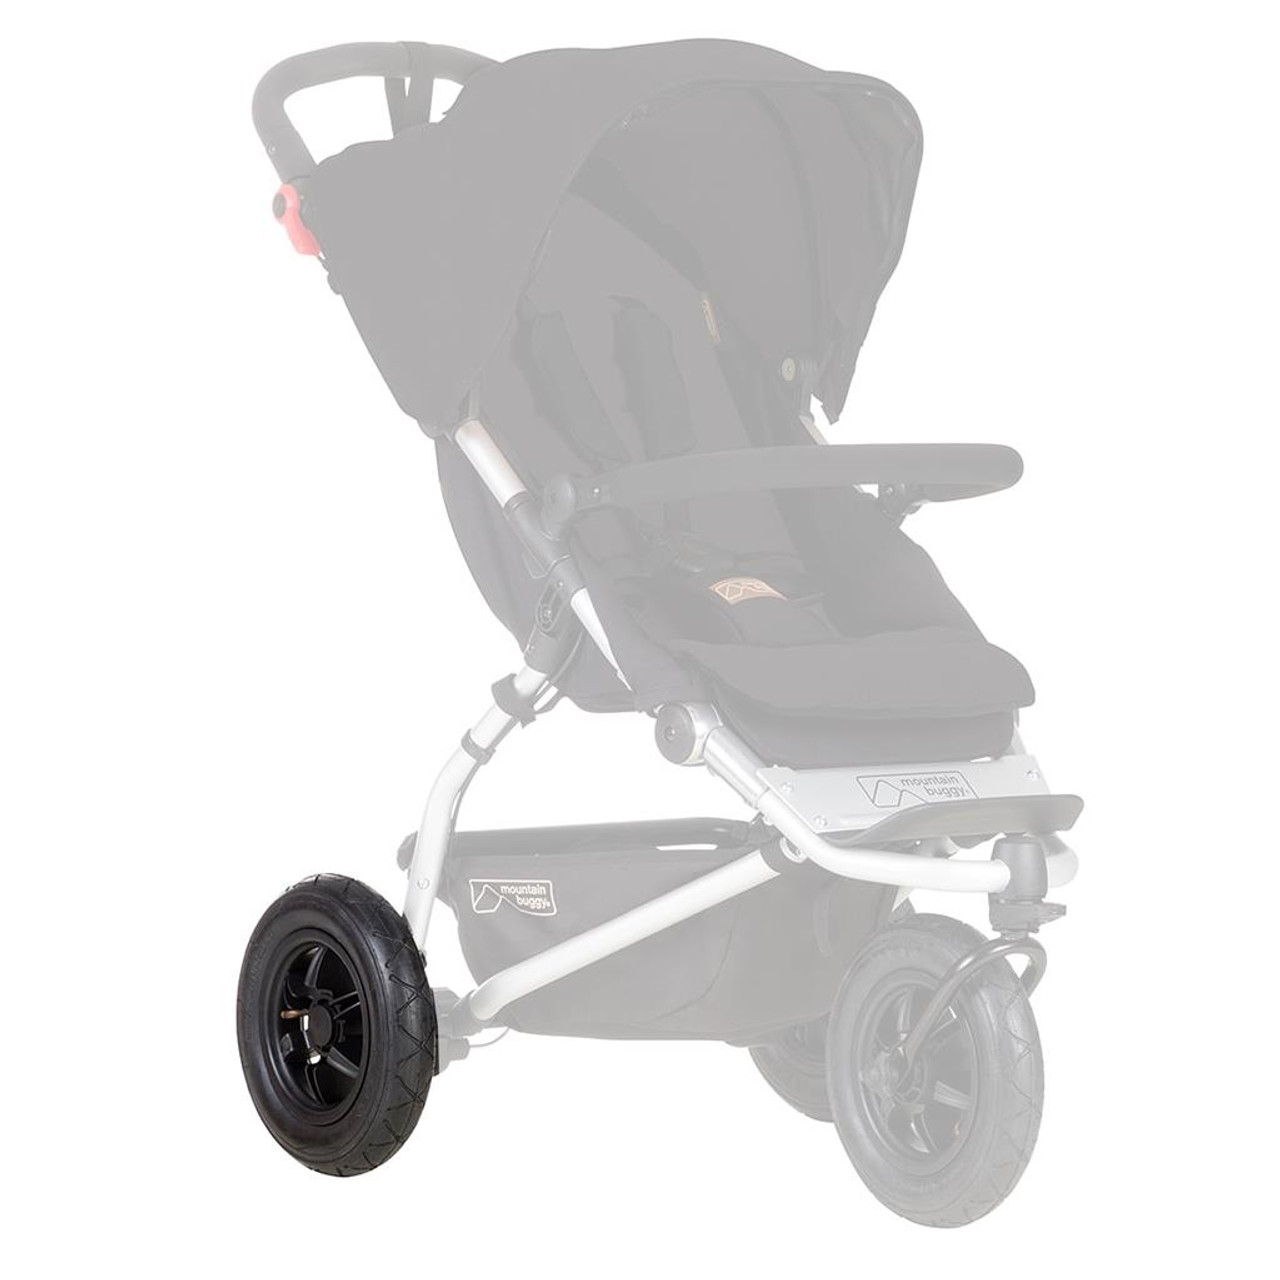 """Mountain Buggy 10"""" Swift 2015+ Rear Wheel with Fixed Axle at Baby Barn Discounts Replacement spare rear wheel for the Mountain Buggy Swift pram/ stroller. Only compatible with 2015+ swift buggies."""